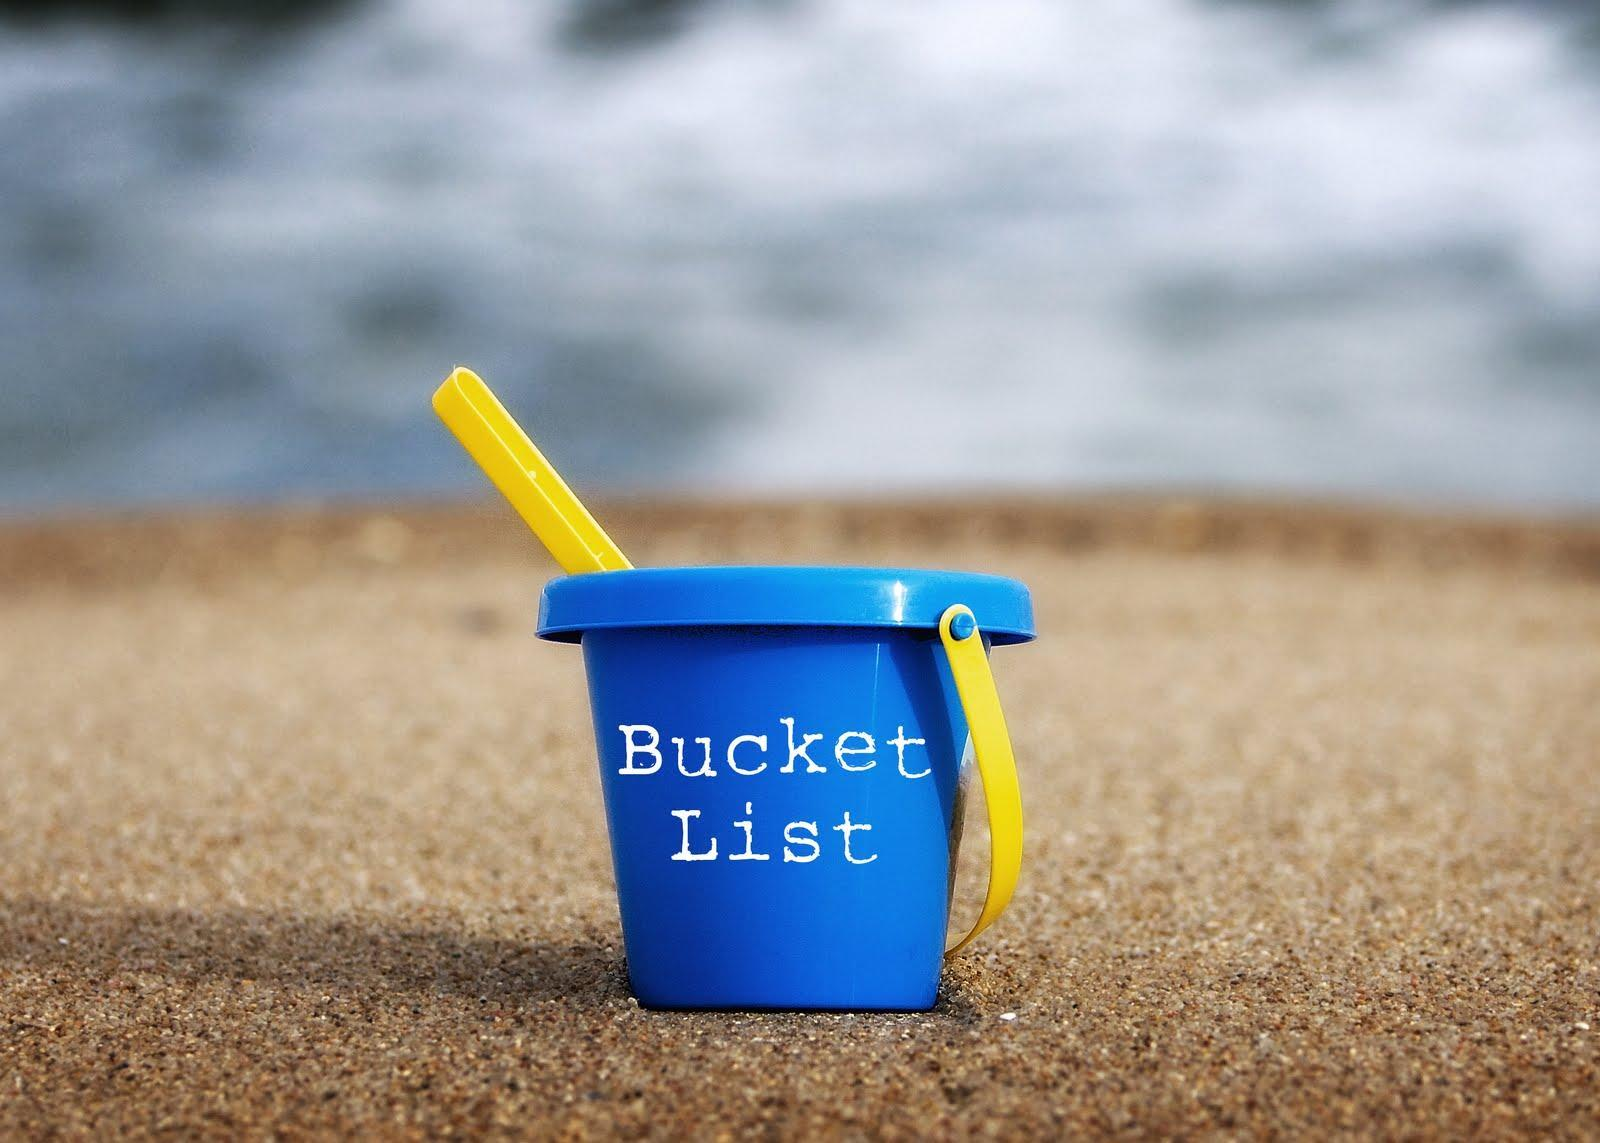 What would you like to have done at the end of your bucket list?